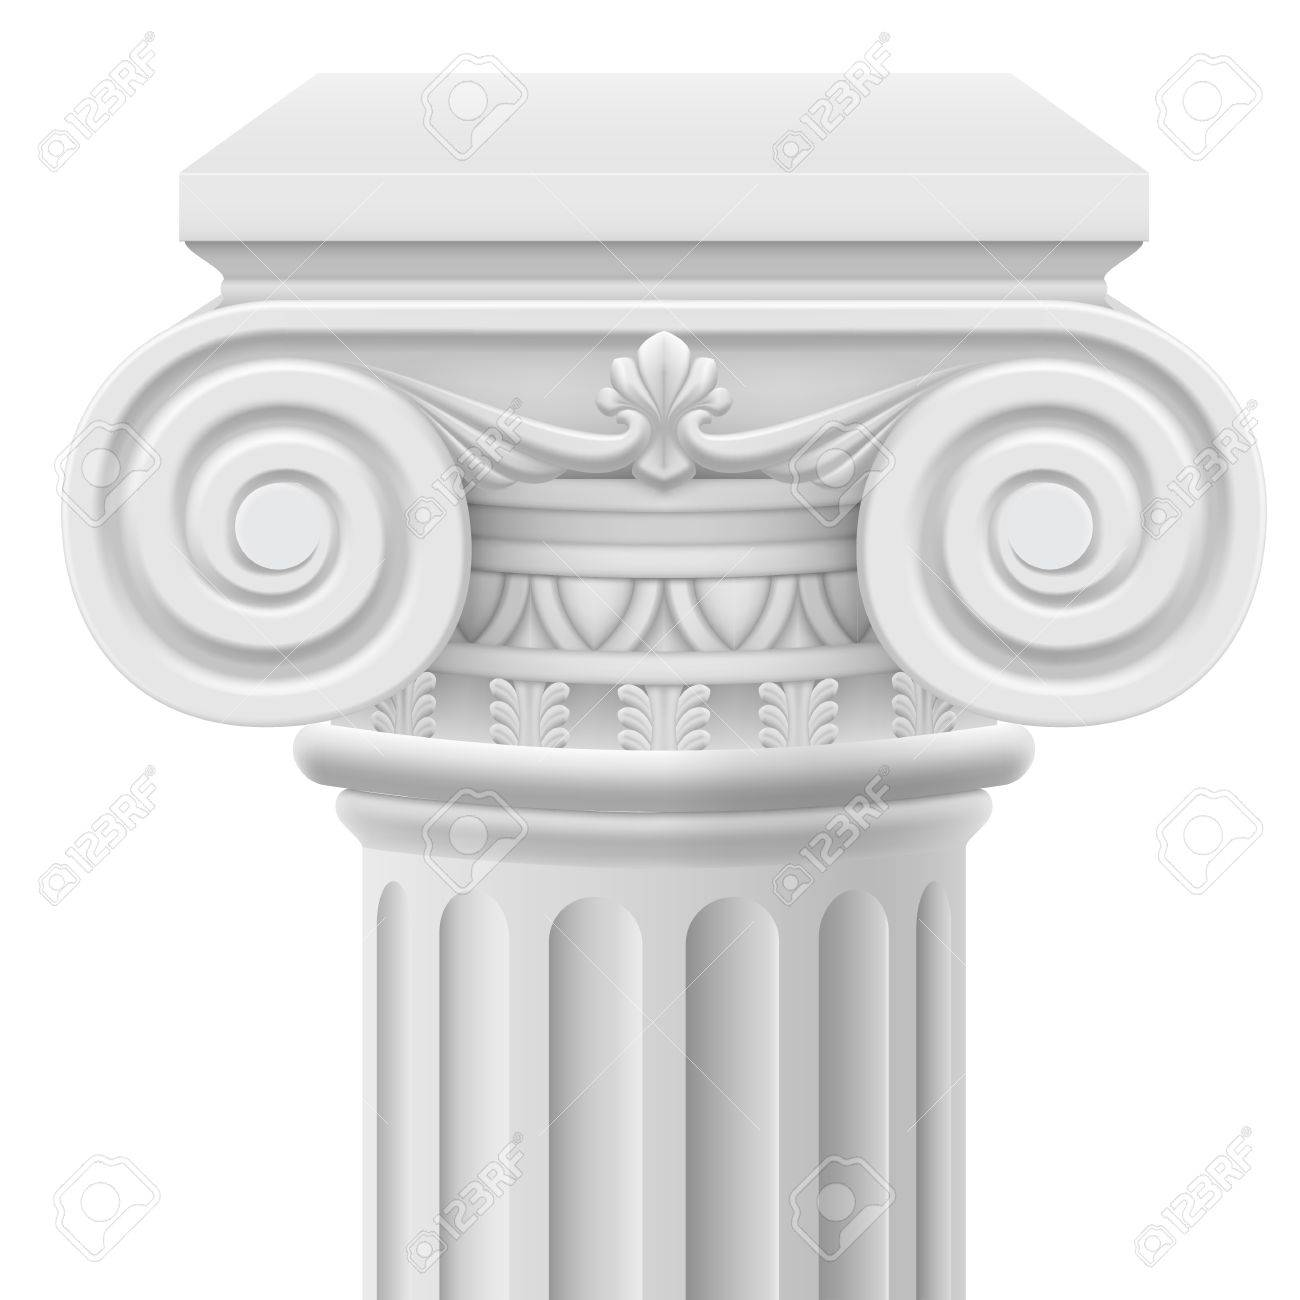 Classic ionic column. Illustration on white background Stock Vector - 21319755